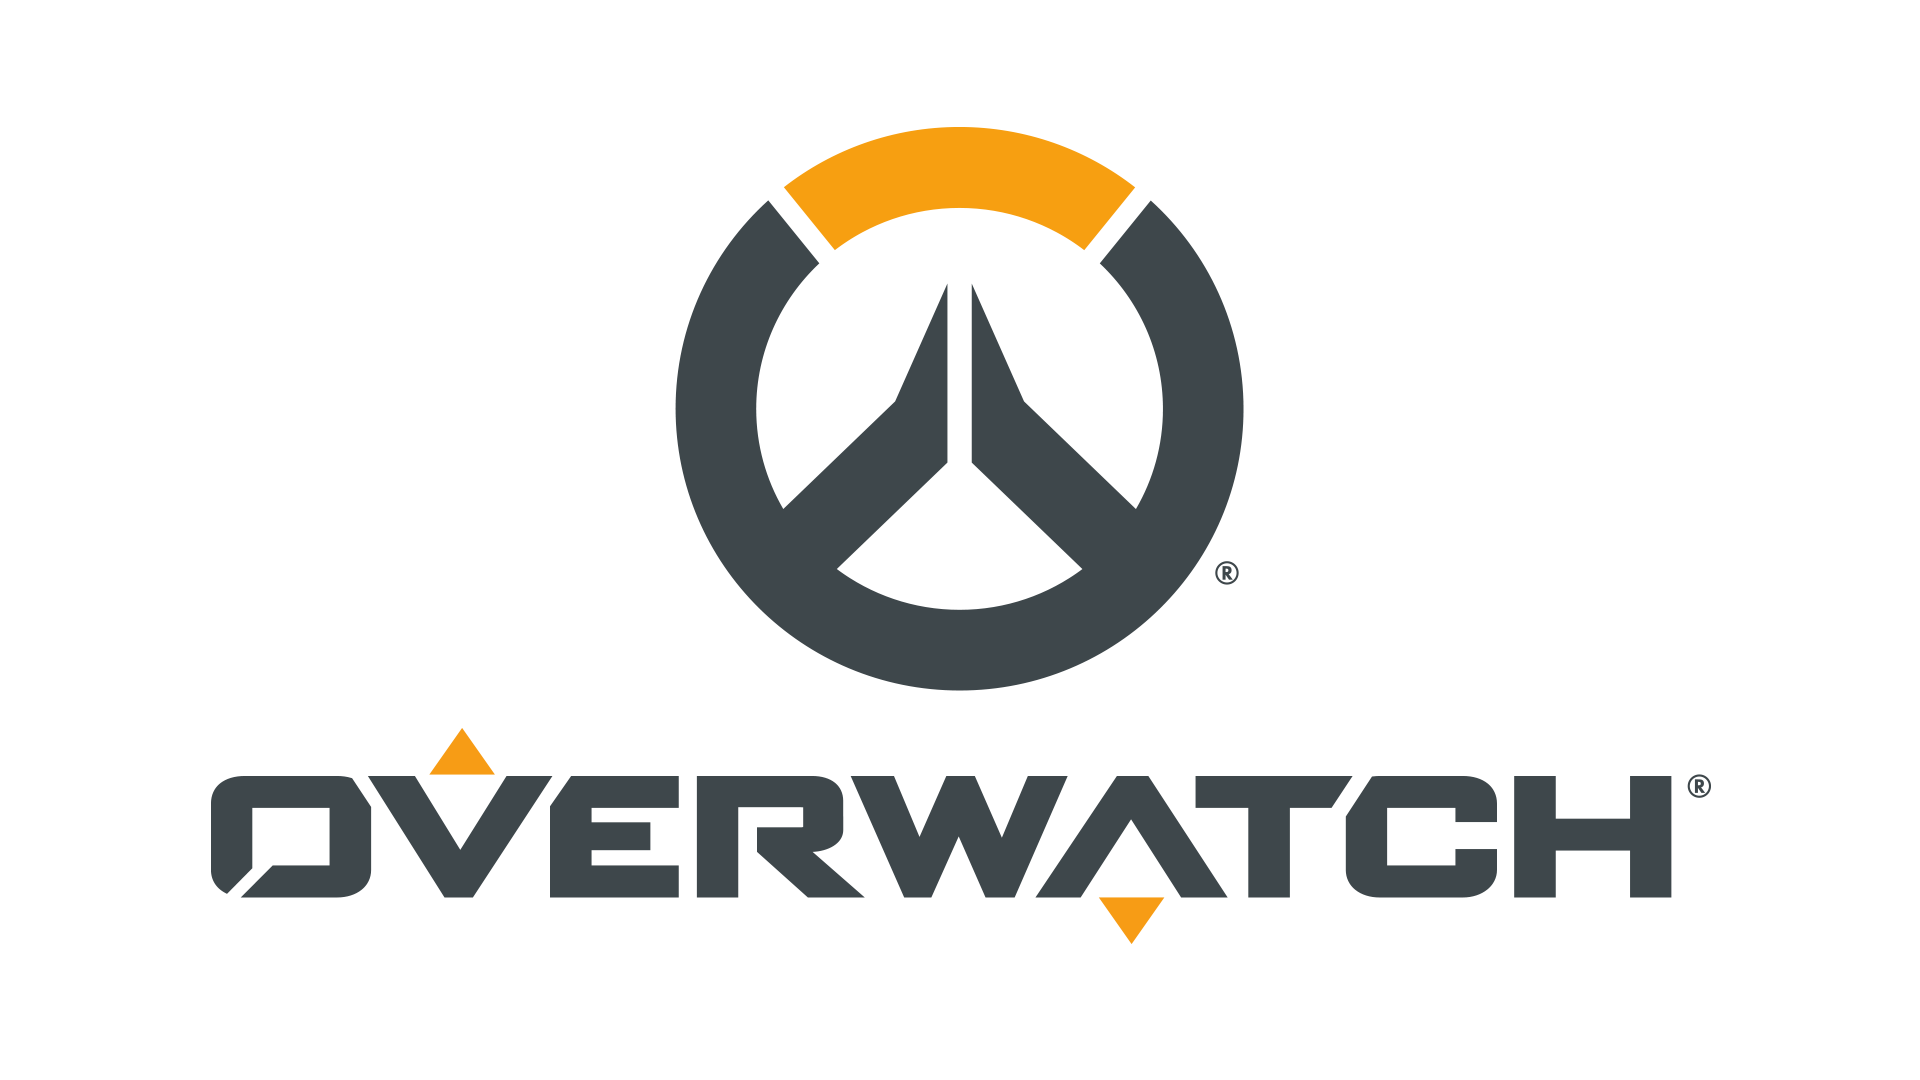 Overwatch symbol png. Logo meaning history and